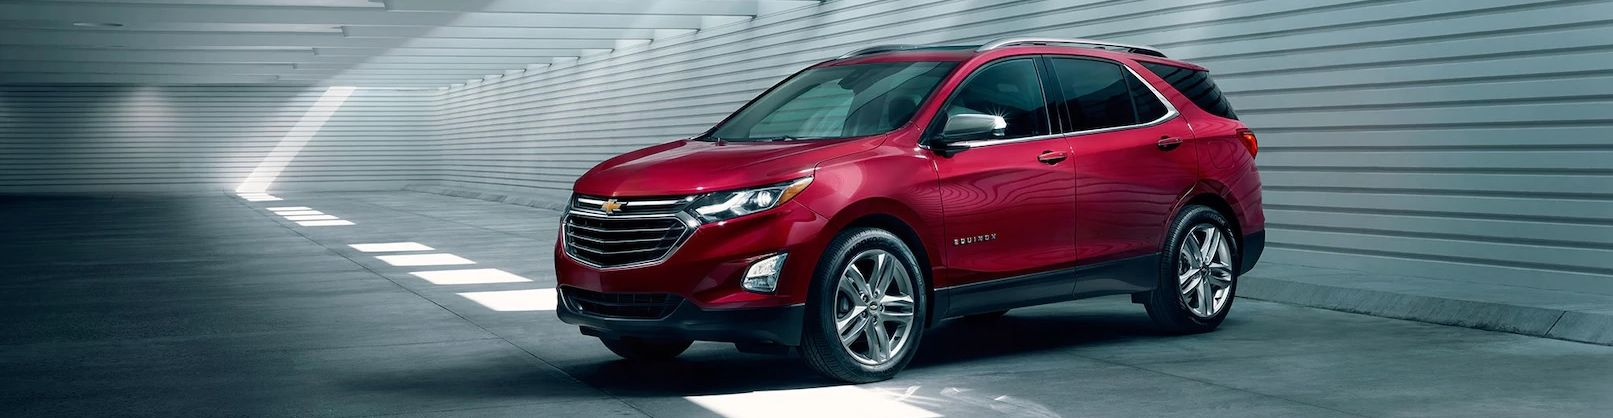 2018 Chevrolet Equinox for Lease near Fairfax, VA